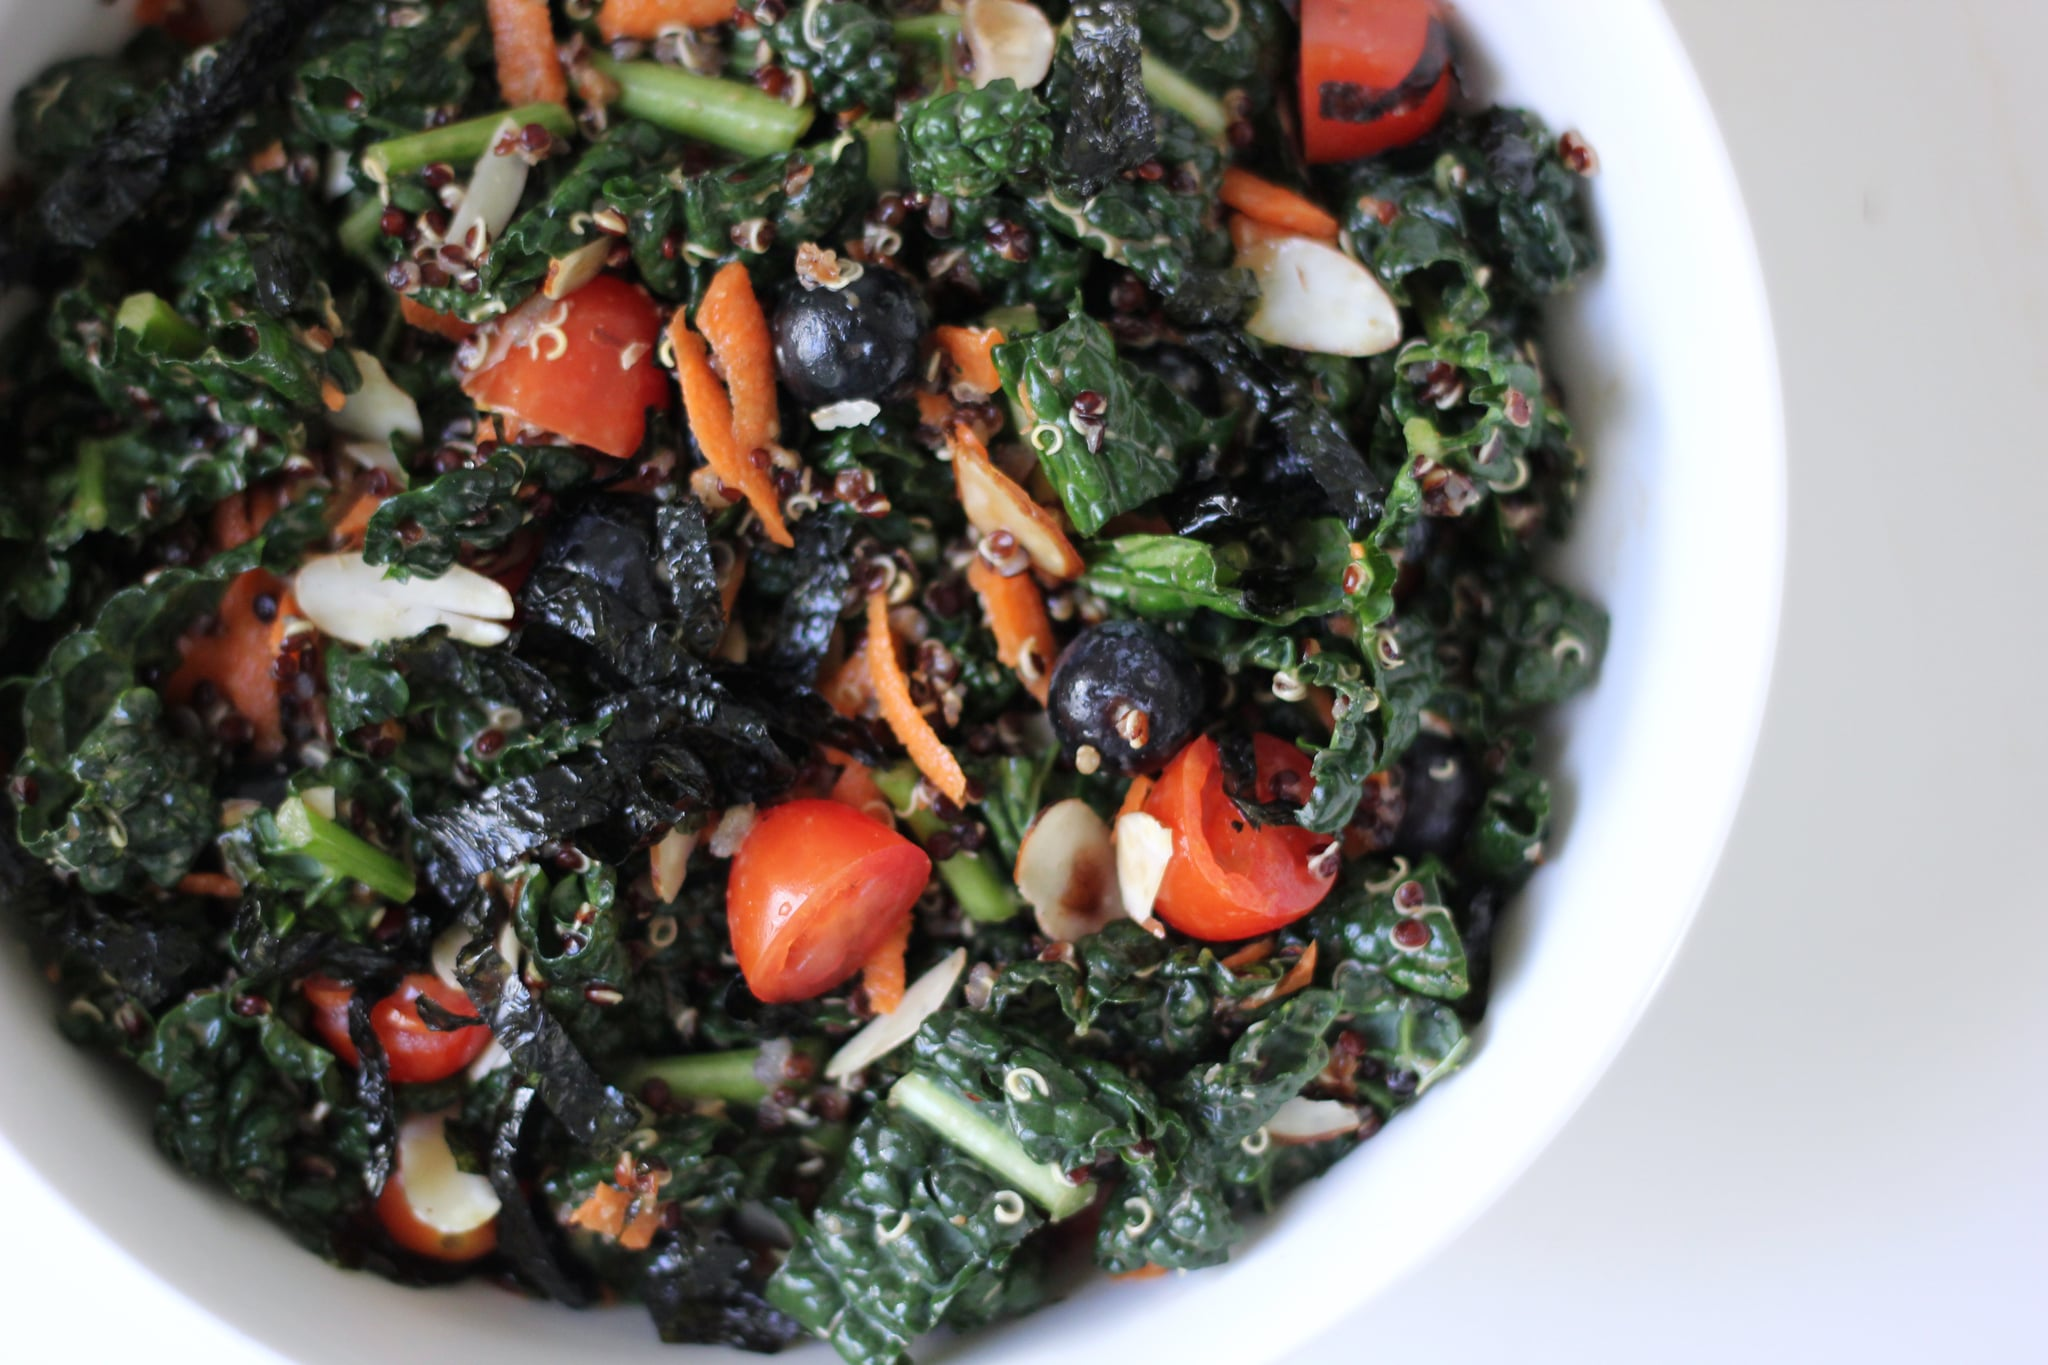 Blueberry, Quinoa, and Kale Salad